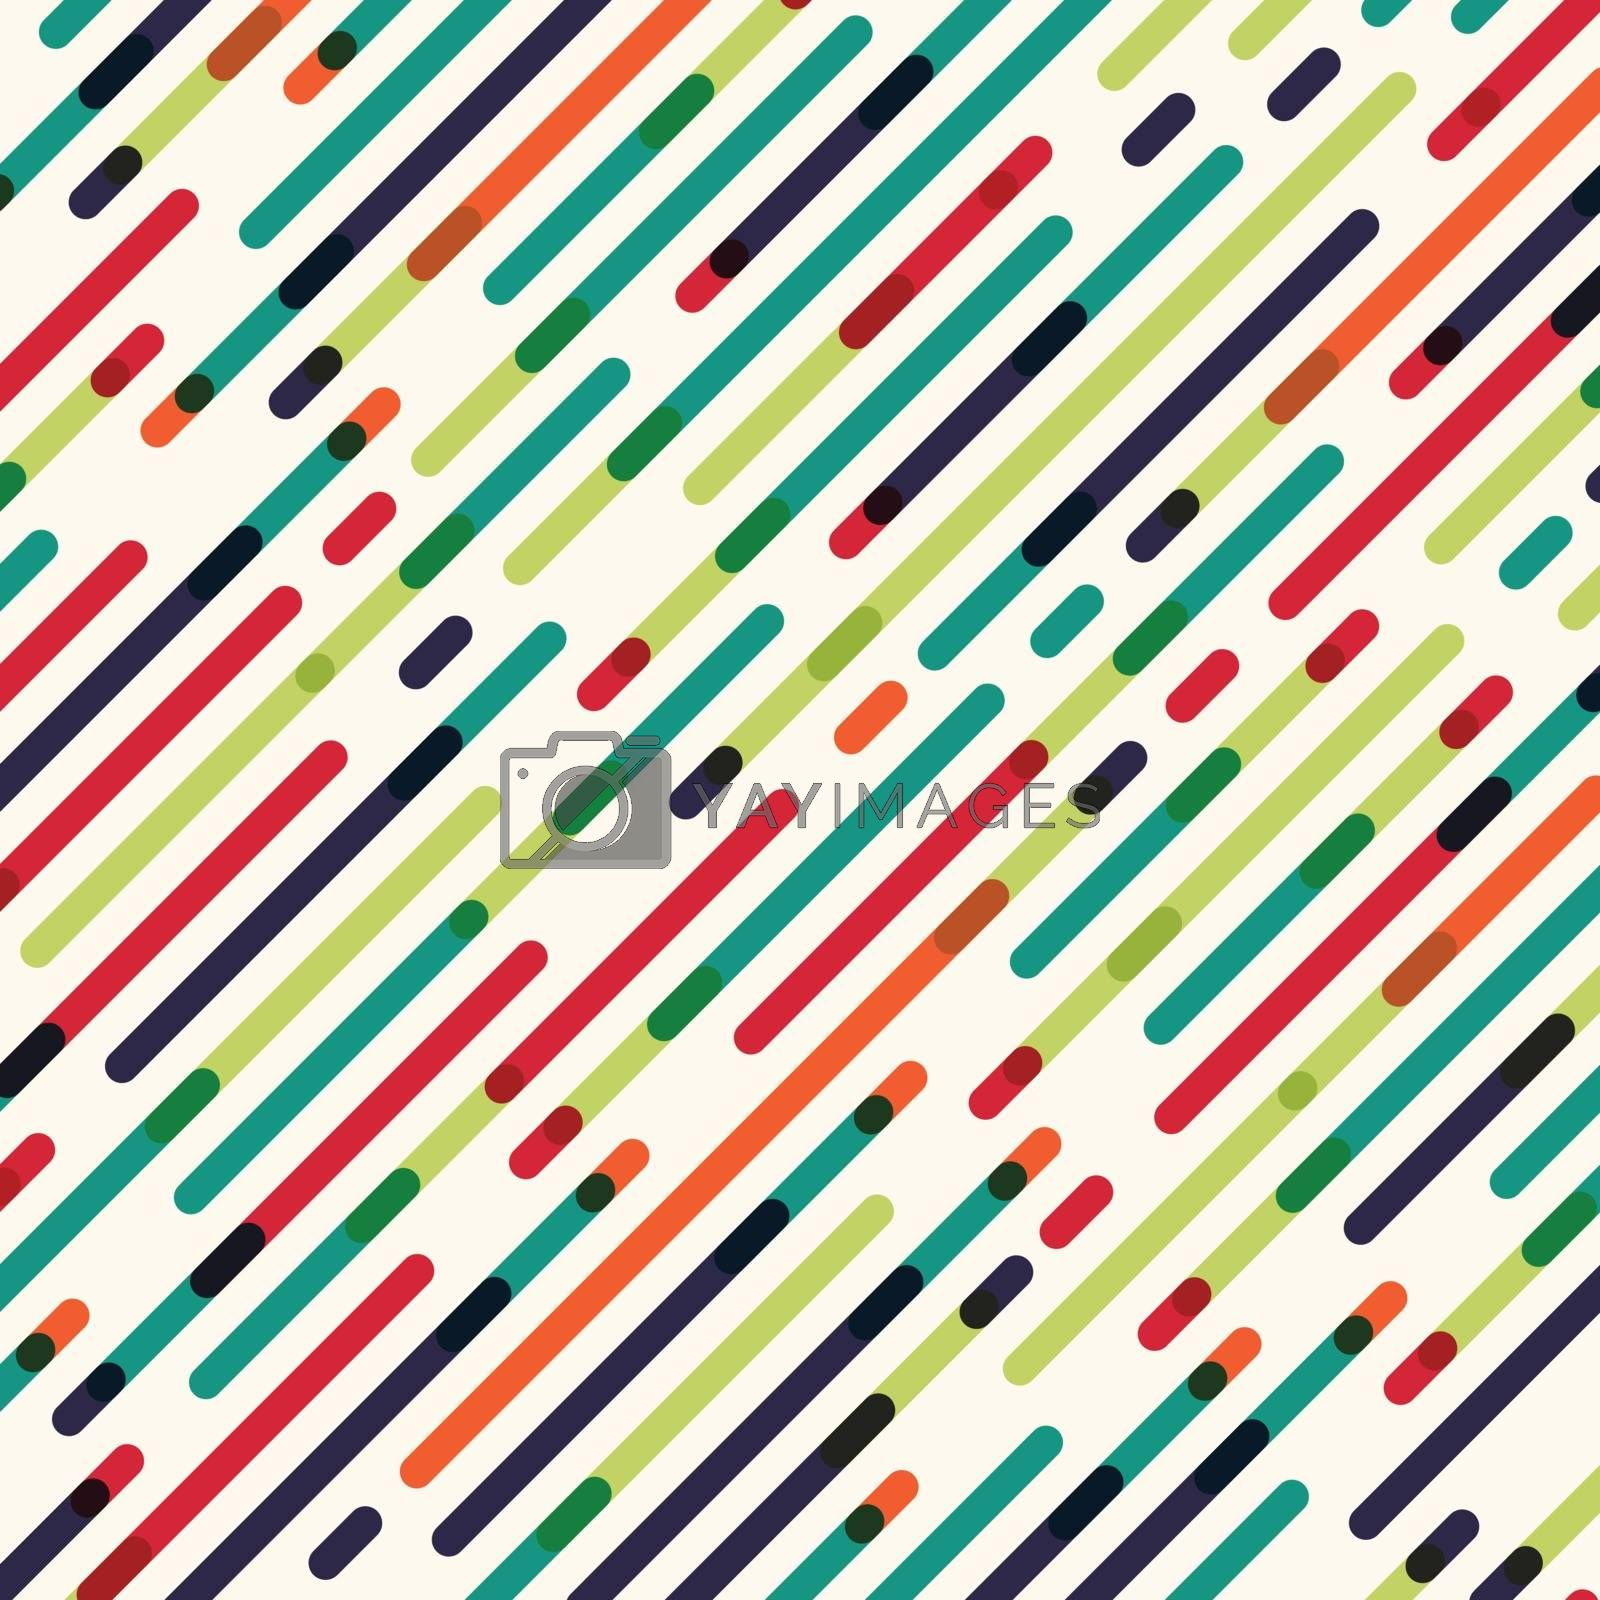 Abstract seamless diagonal Red Green and blue color lines pattern background. Vector illustration